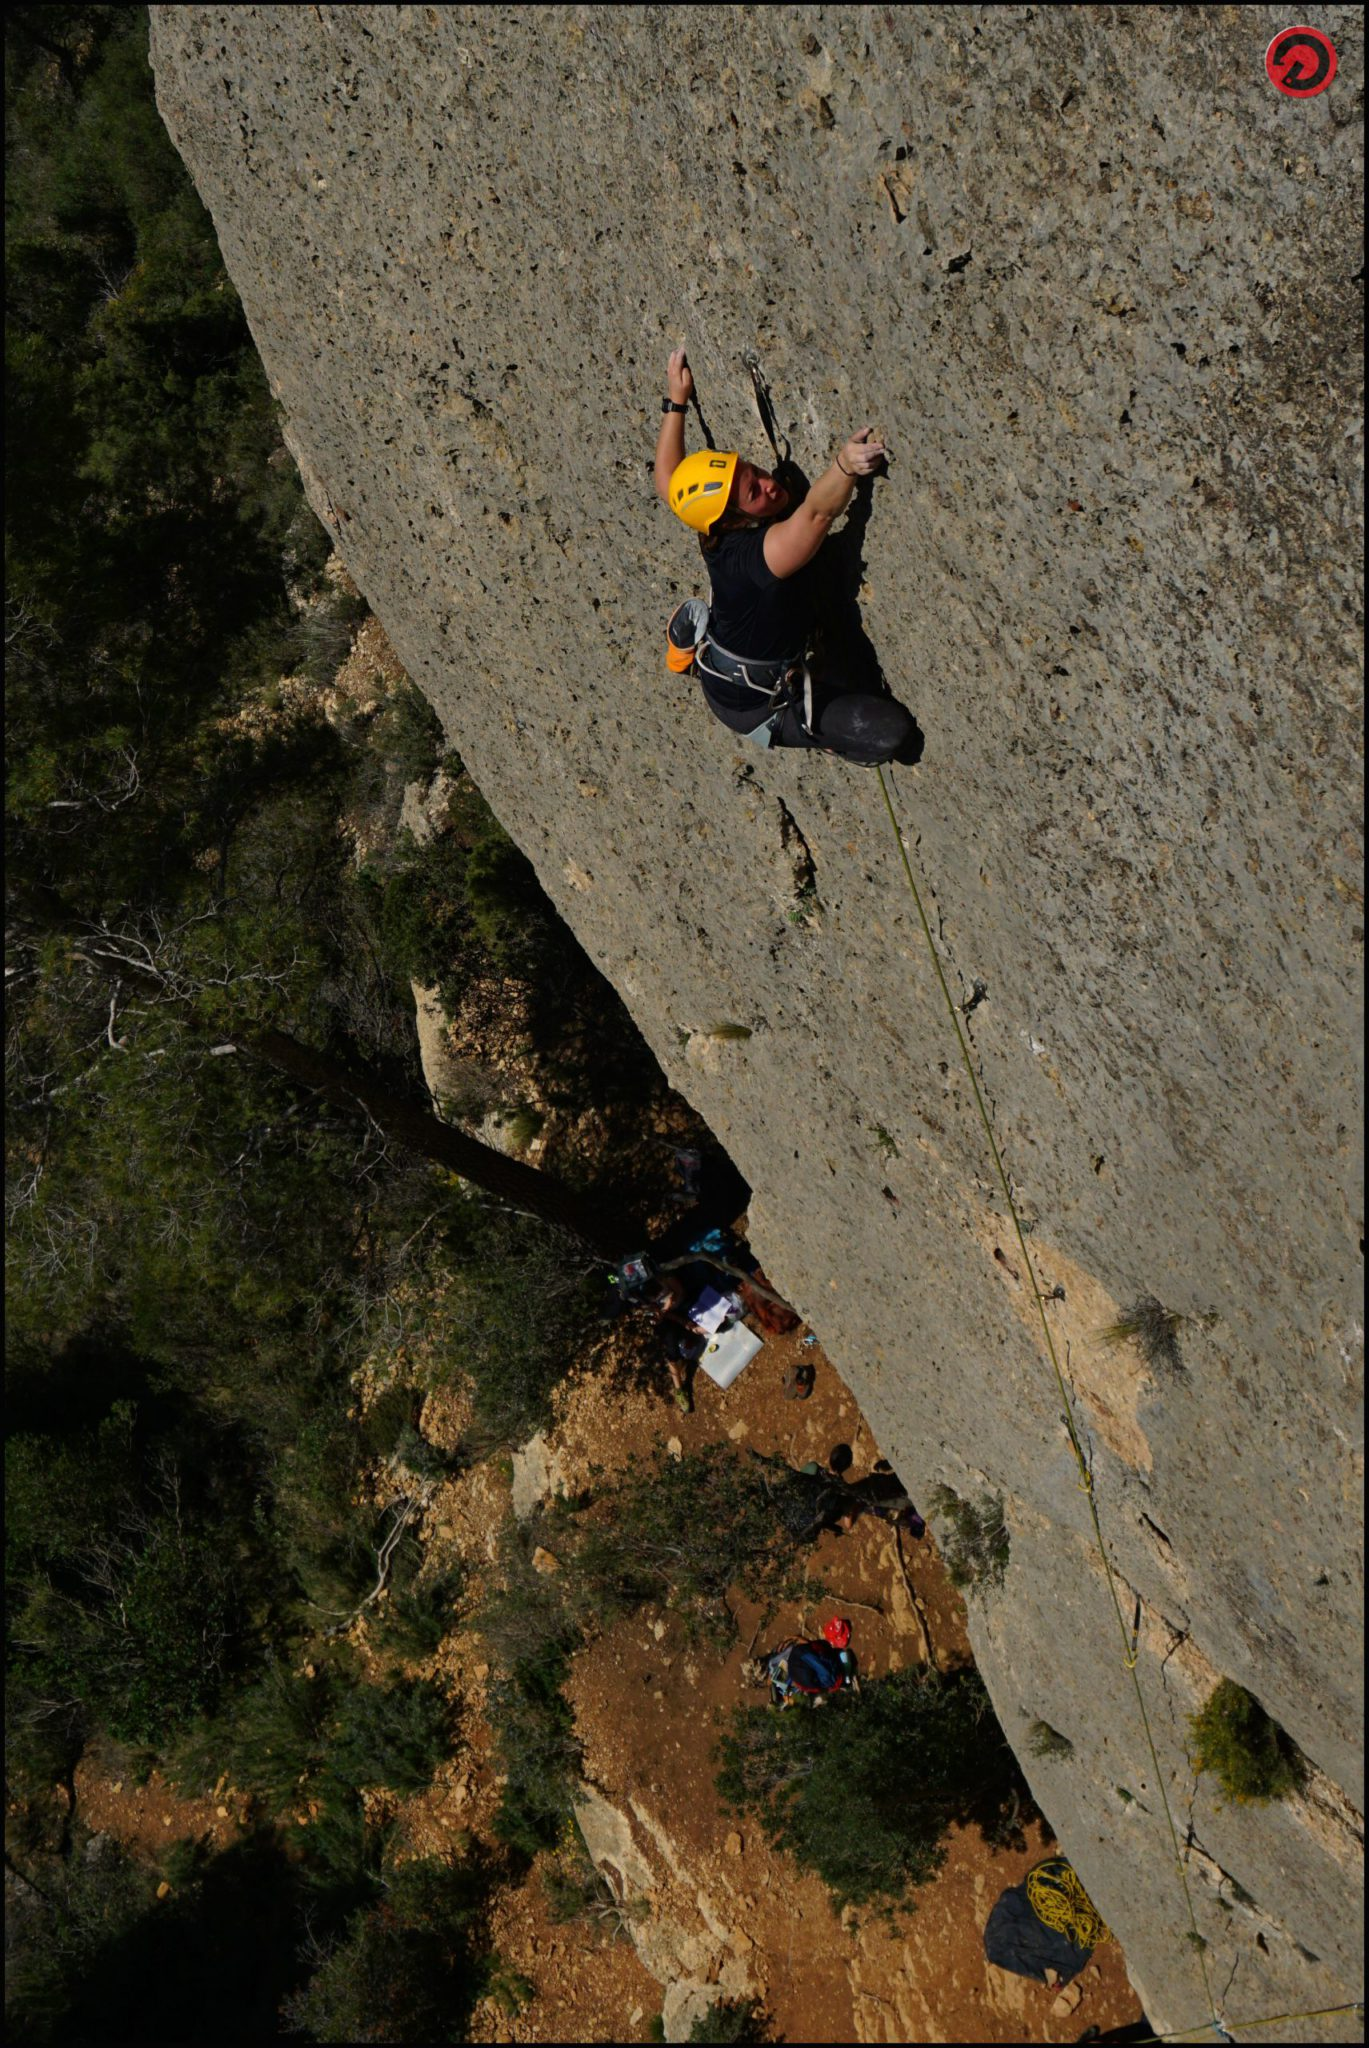 Beginner rock climbing course: Learn to lead climb in Europe